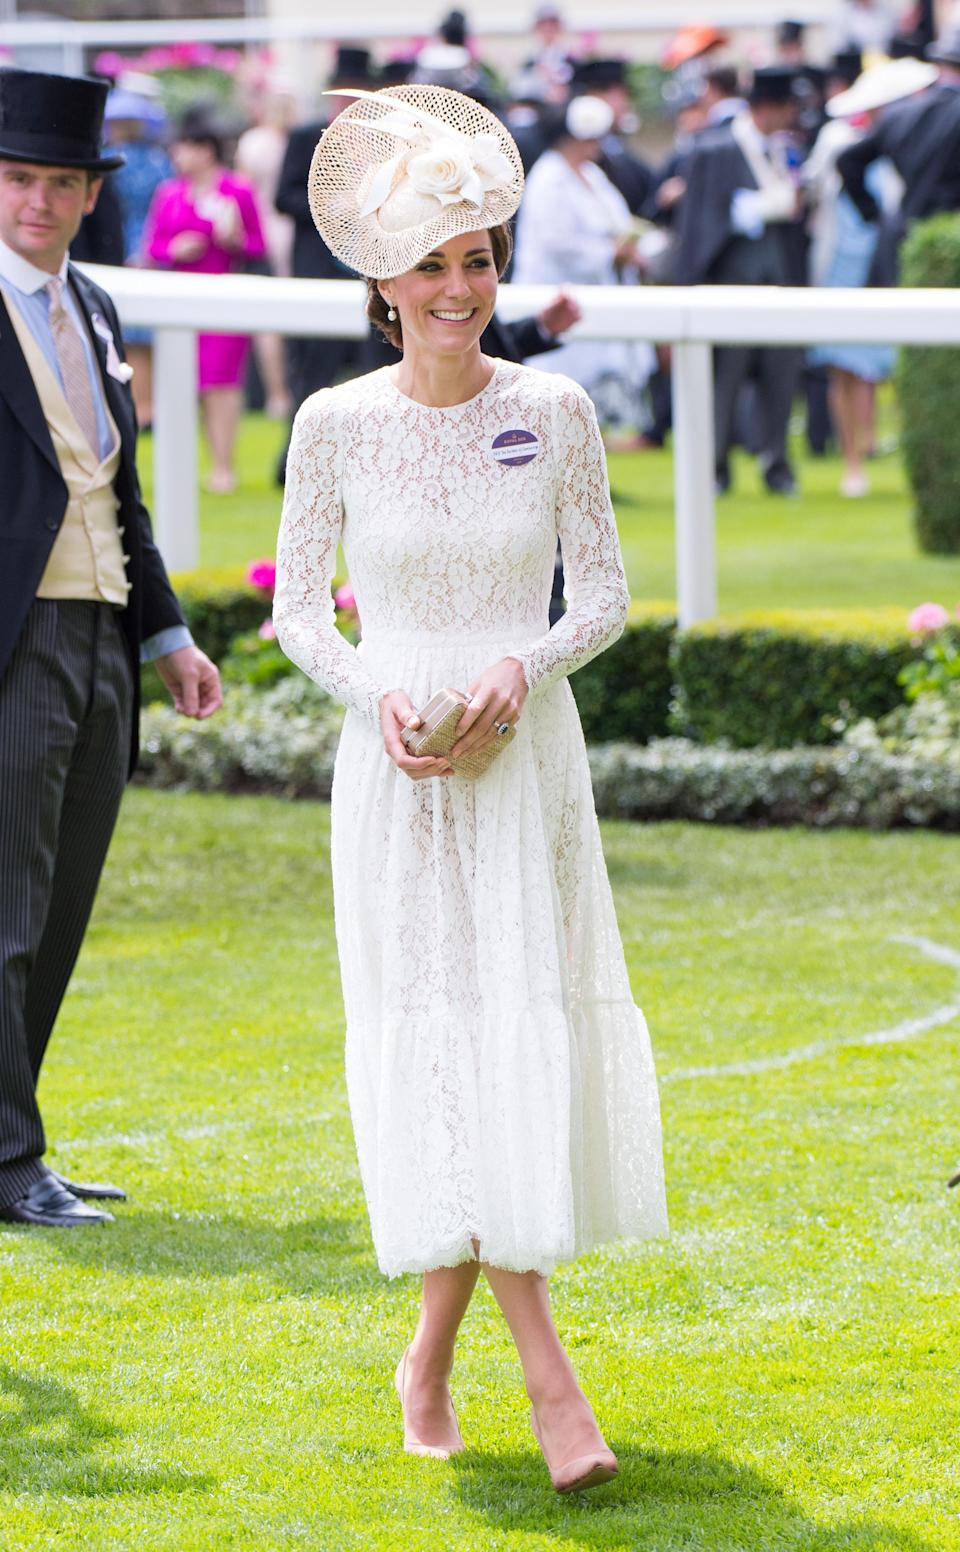 <p>For the first day of Royal Ascot 2017, the Duchess of Cambridge opted for a lace midi dress by Alexander McQueen. The look was reminiscent of a Dolce and Gabbana number she wore to the event. She teamed the dress with Gianvito Rossi heels. <em>[Photo: Getty]</em> </p>